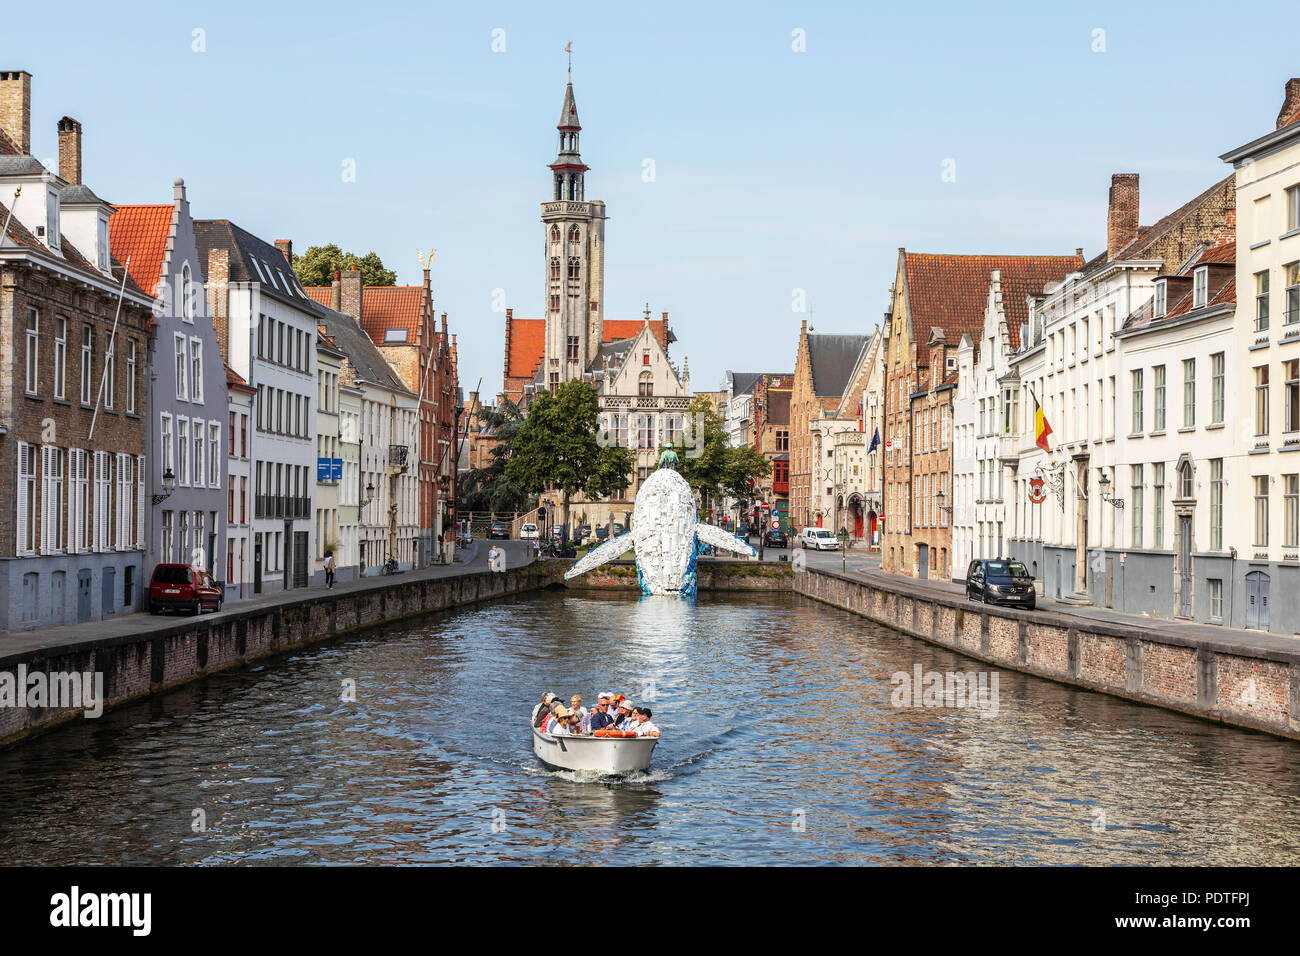 Tourists in a canal tour boat viewing the Bruges Plastic Whale sculpture made from discarded plastic containers and waste washed up from the sea, - Stock Image